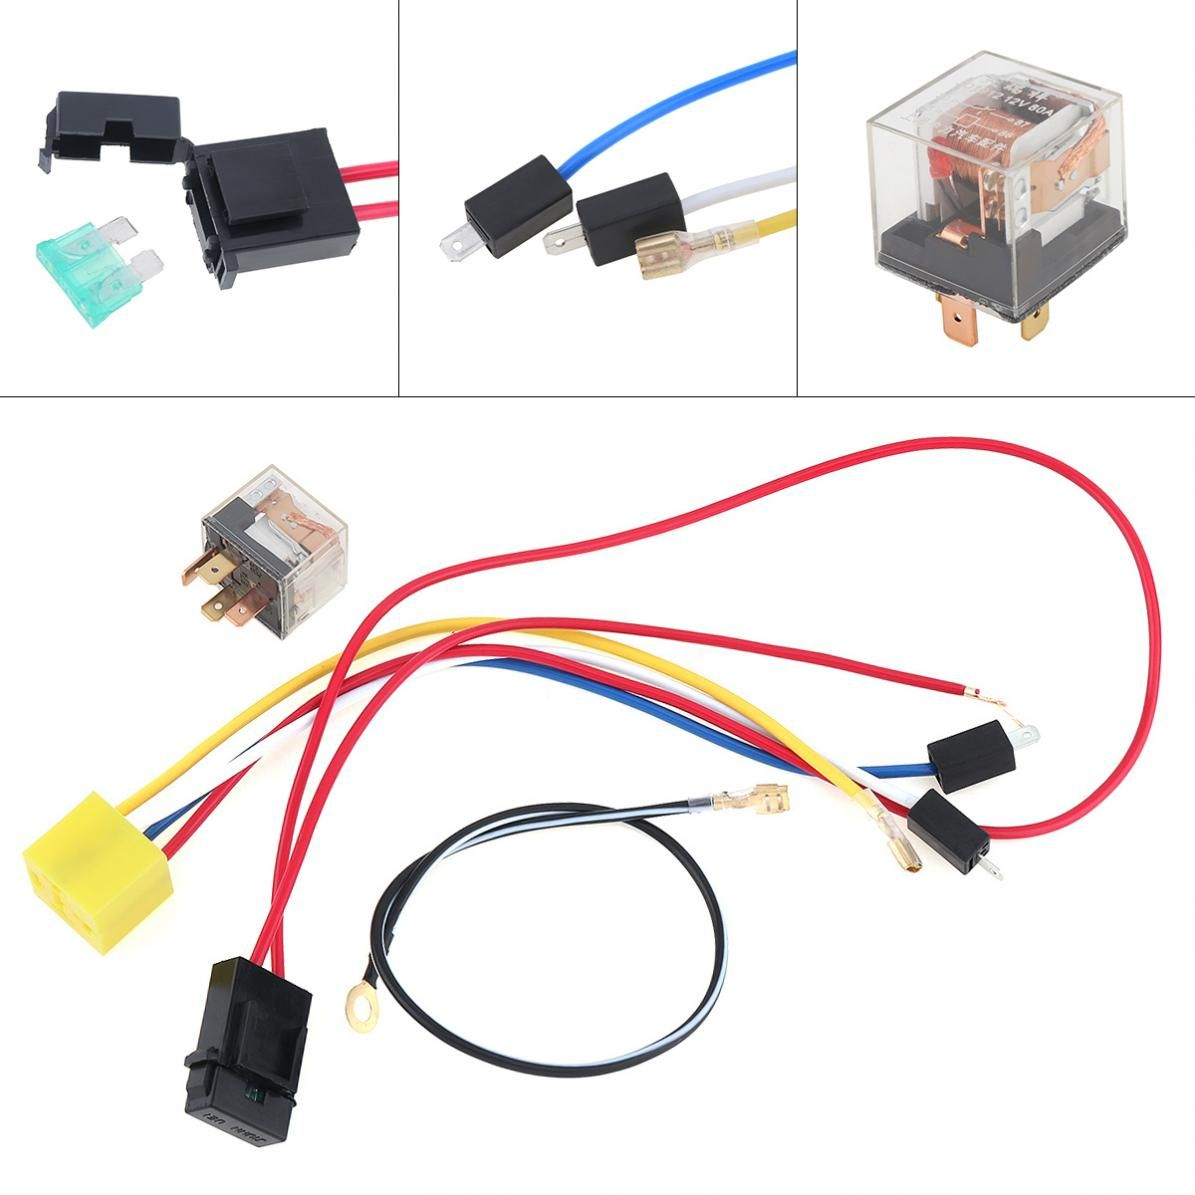 Durable Universal 12V Wires and Relay for Air Horn Car/ Truck / Vehicle